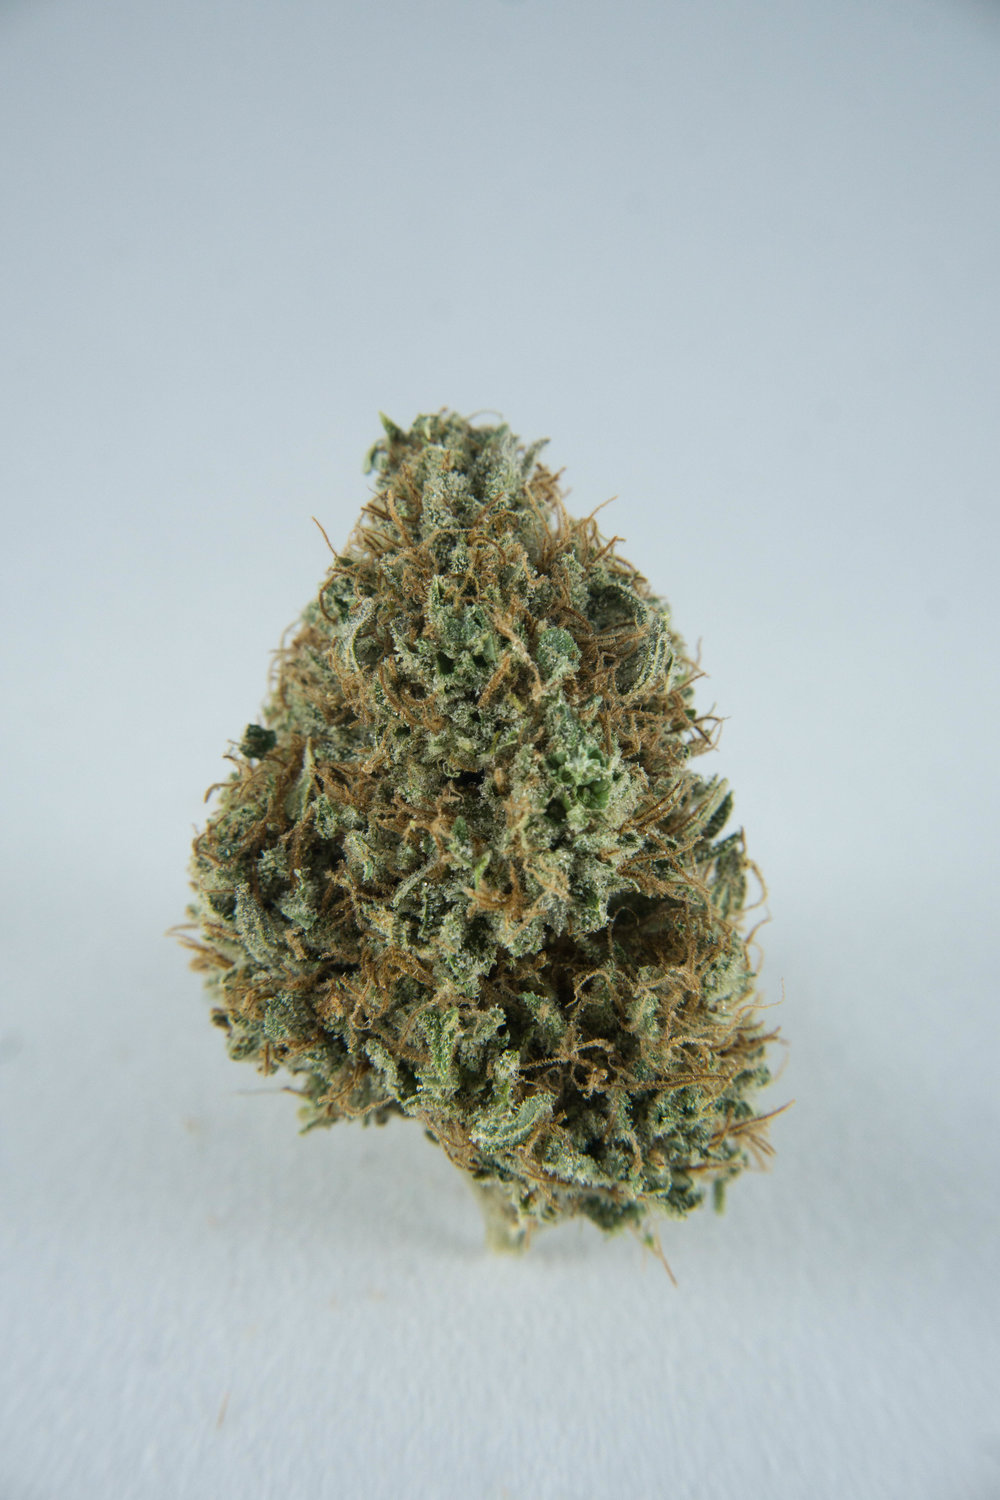 Longtime indica dominant strain that was well known in Girdwood throughout the last two decades. Comes on strong, a great regular choice for a heavy smoker, instant pain relief and euphoria, not for the faint of heart. Not to be confused with the many dogs in the area named after this famous strain